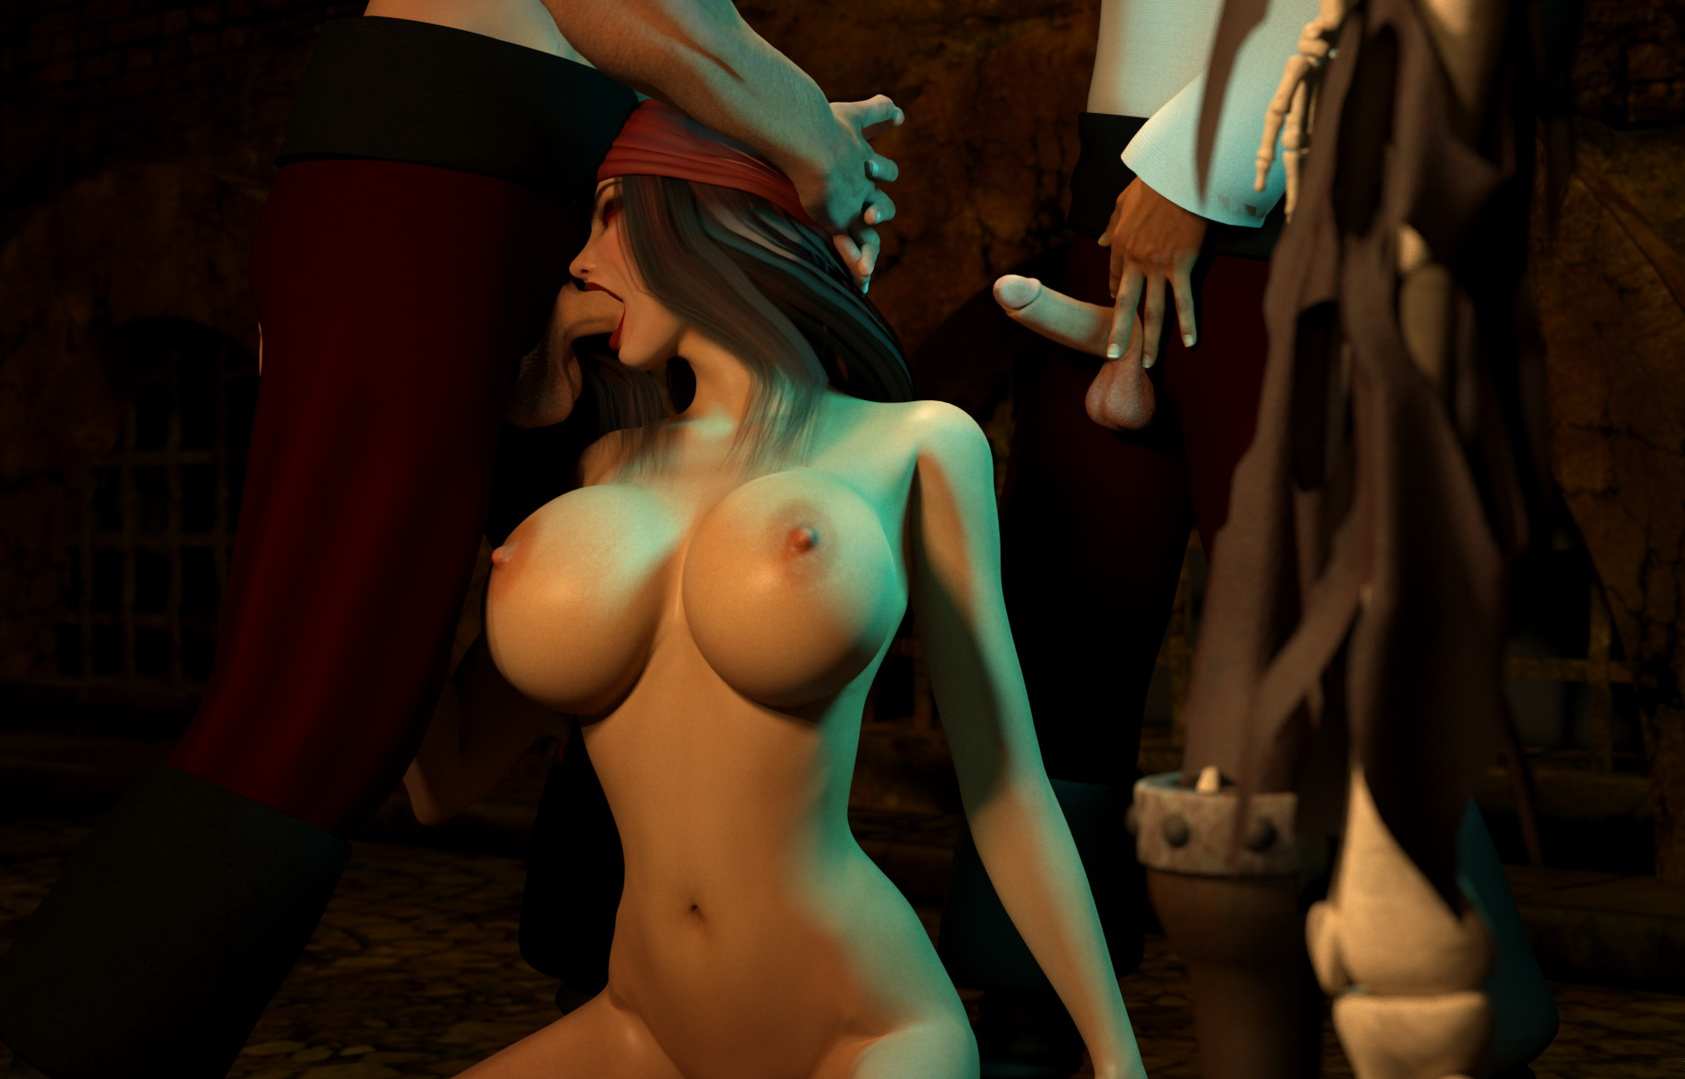 Hot nude 3d pirate girl hentay images